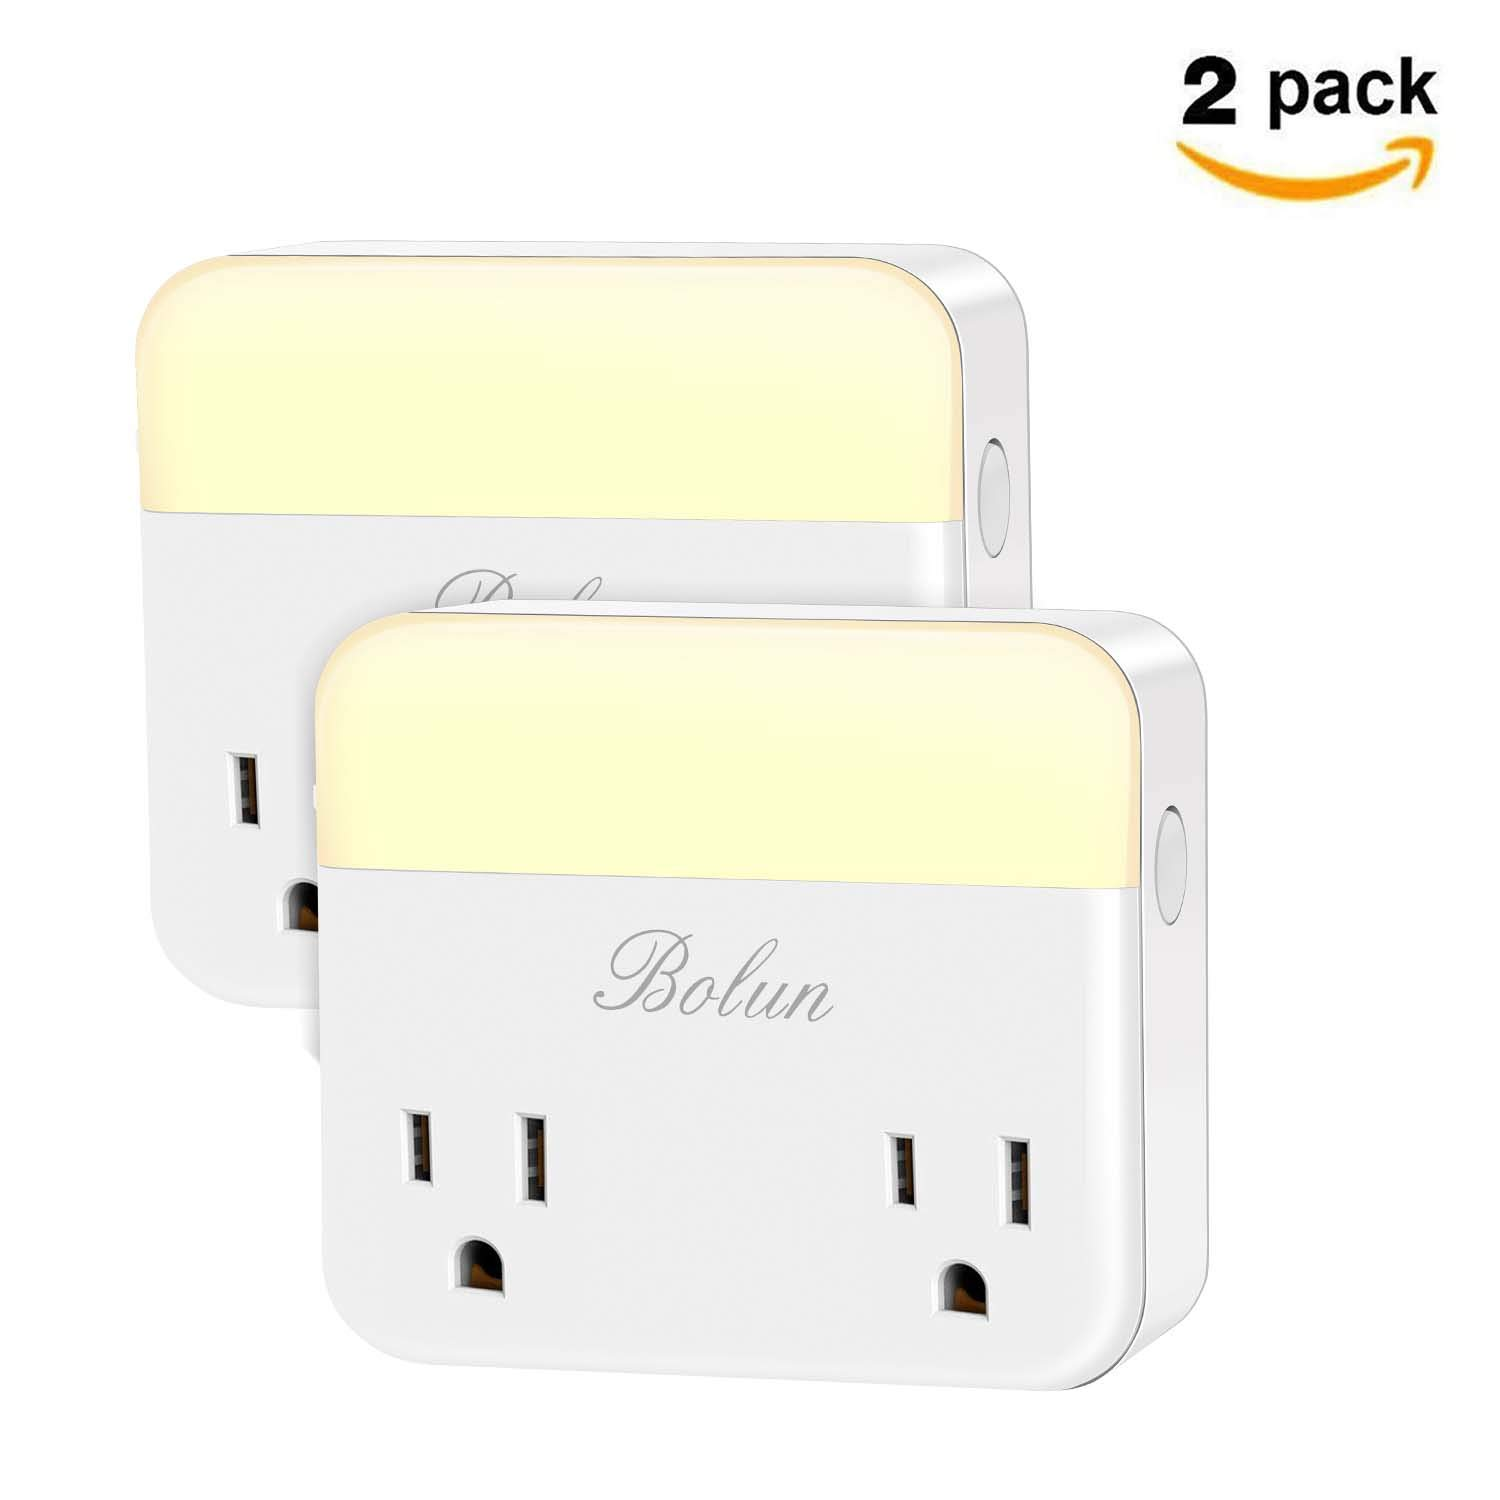 Smart Plug Wifi Outlet with Night Light, Works with Alexa, Echo, Google Home Assistant IFTTT, Wireless Remote Control Outlet from Anywhere, No Hub Required, 0%-100% Adjustable Brightness, 2 Packs